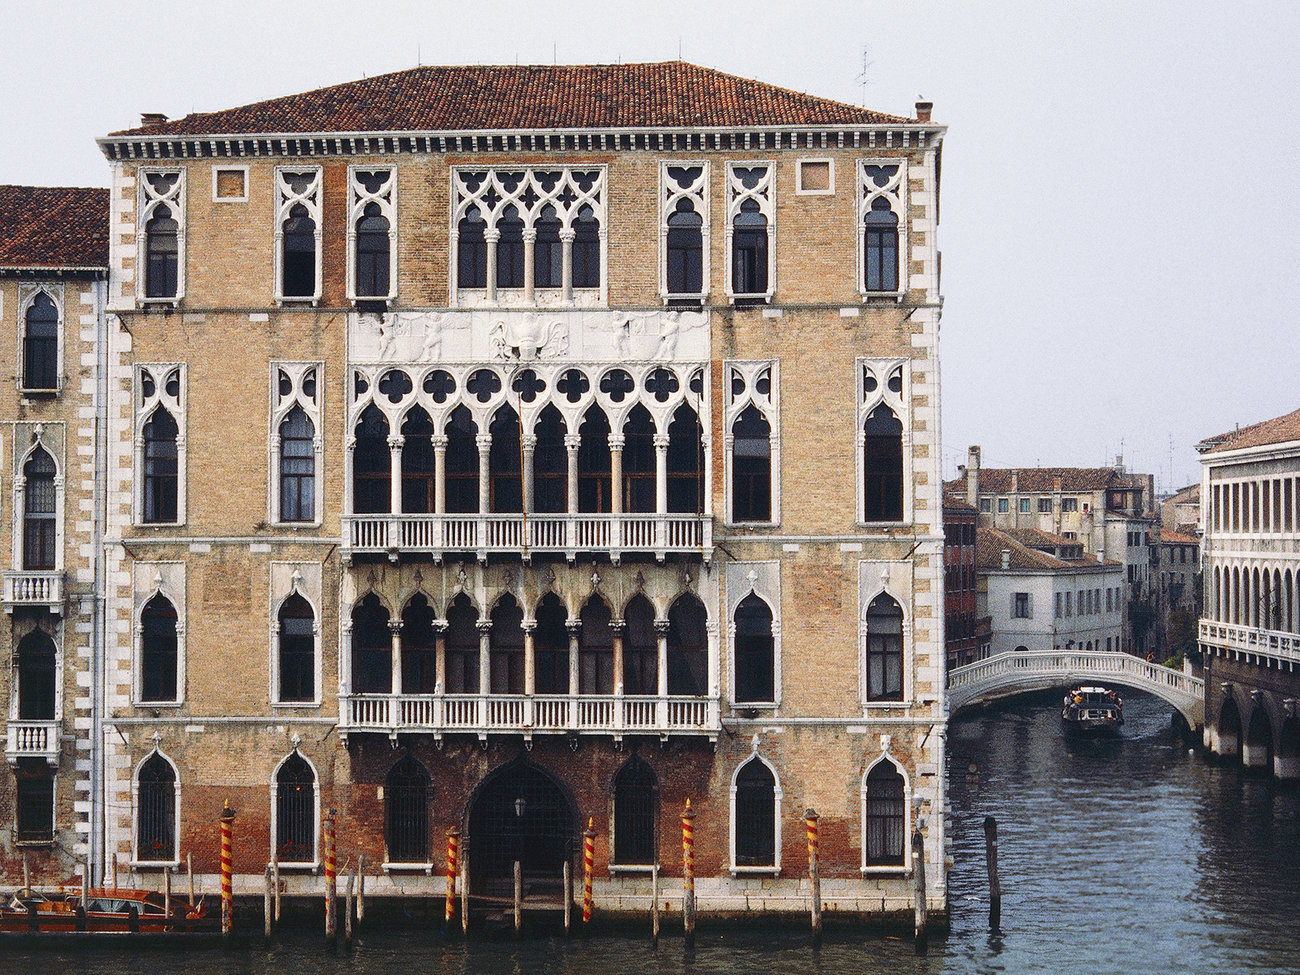 Ca' Foscari Palace on Grand Canal in Venice